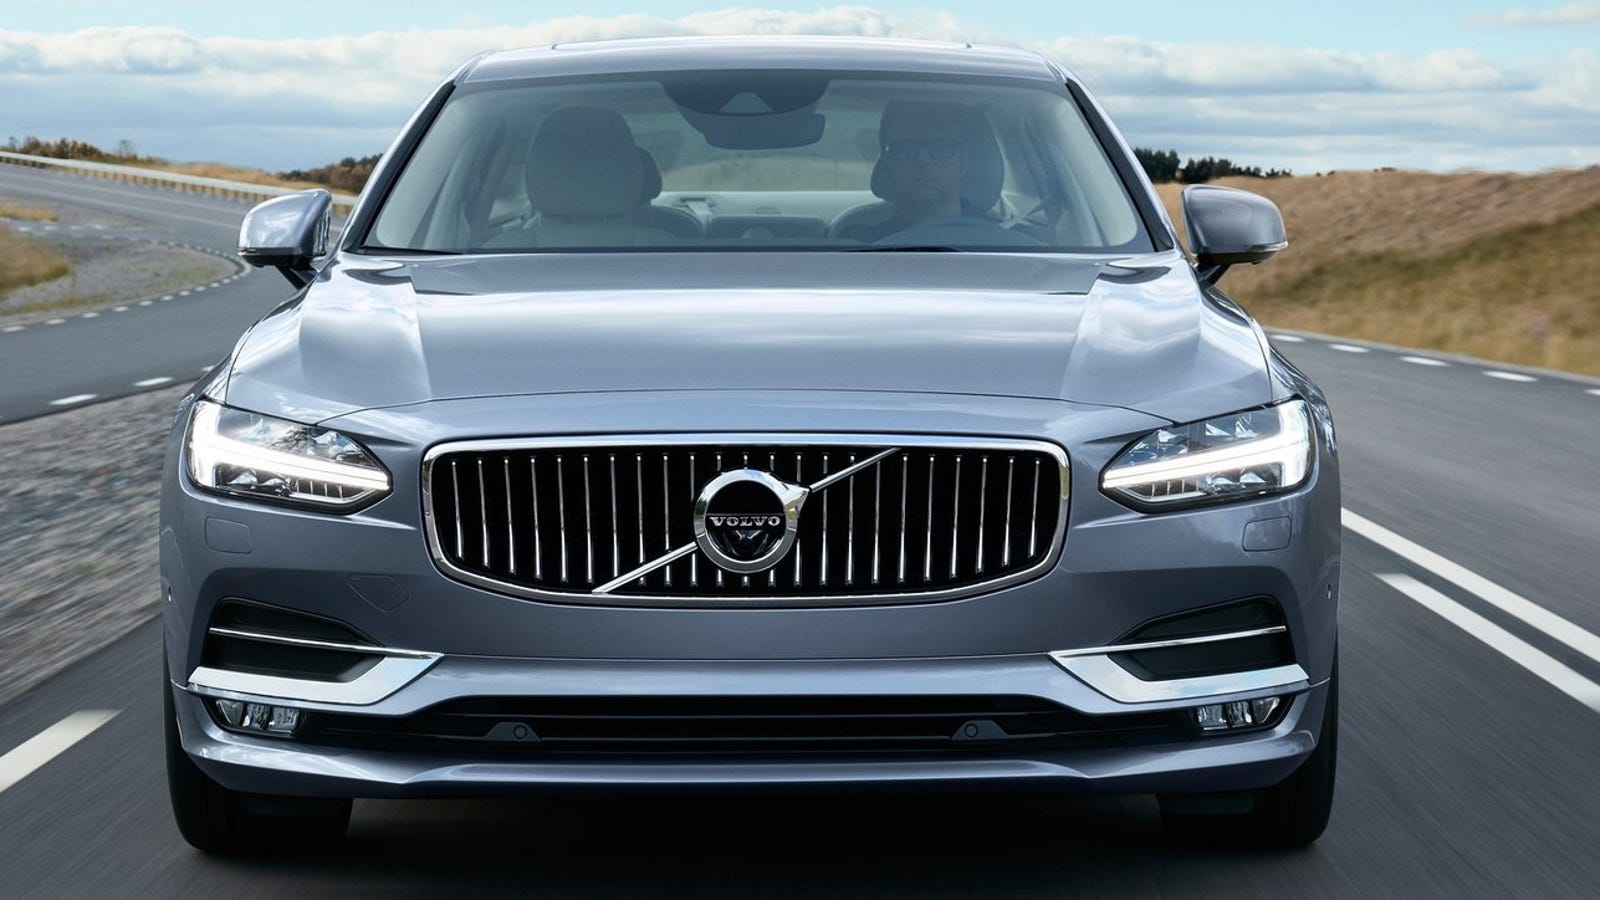 Polestars, Hybrids And Shooting Brakes: Everything I Learned About Where Volvo Is Going